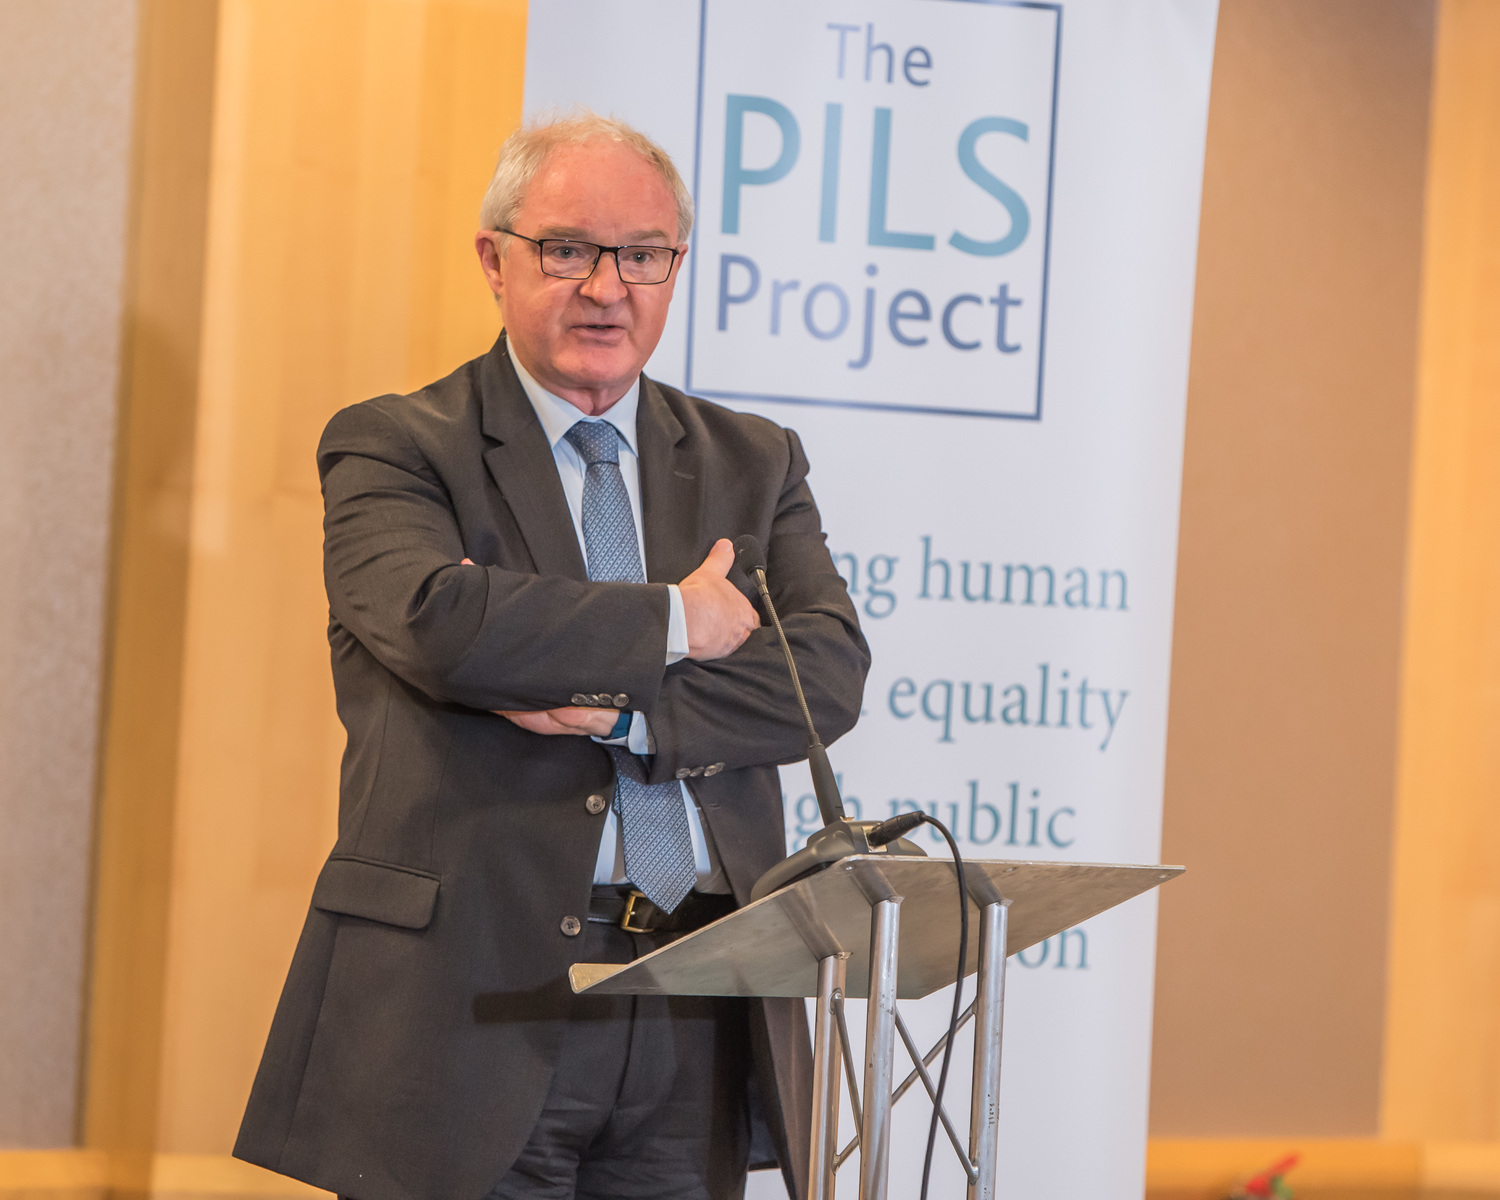 Lord Chief Justice Sir Declan Morgan. Photo courtesy of the Public Interest Litigation Project.